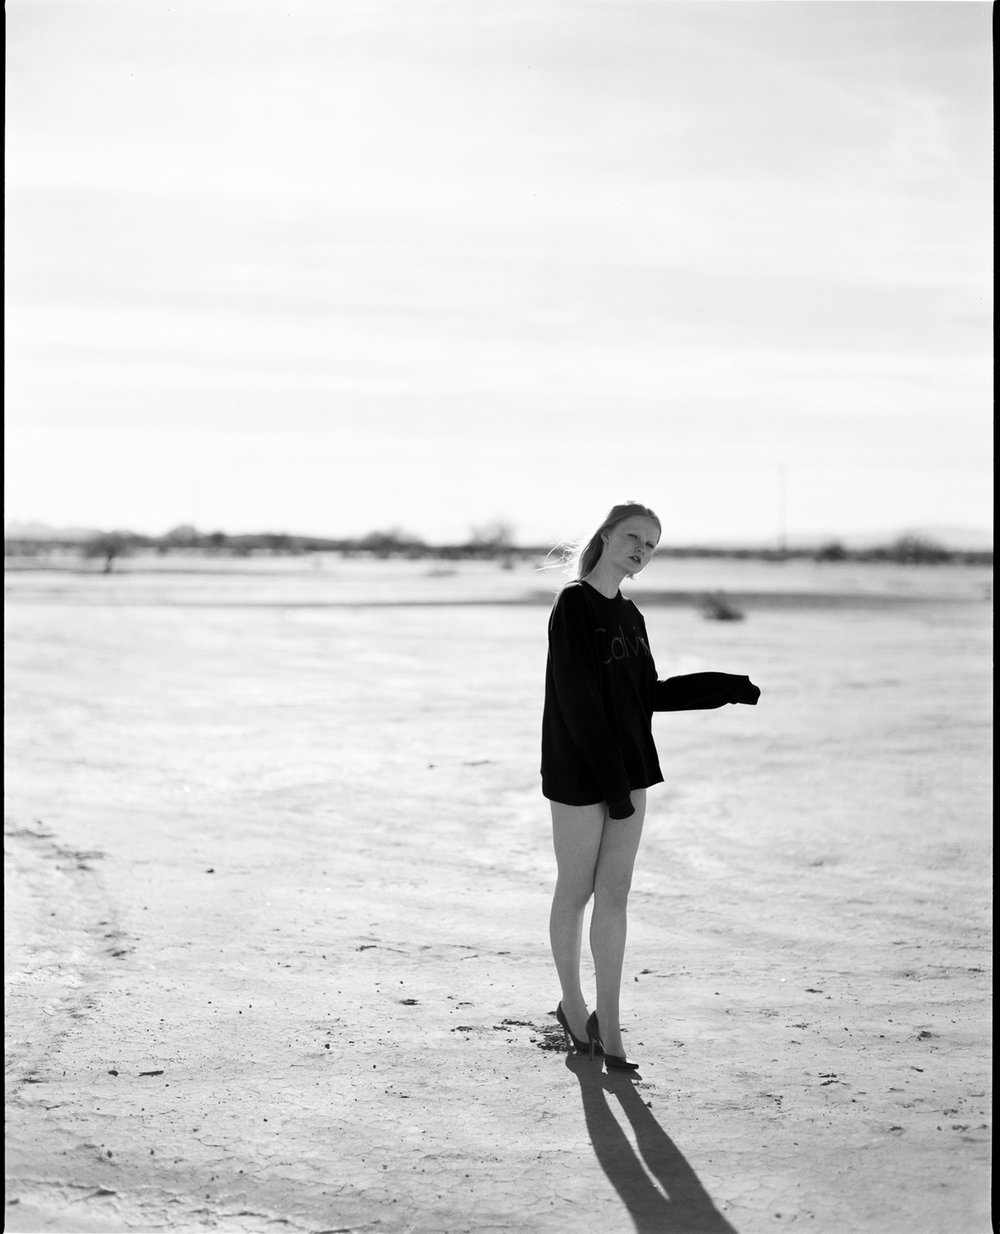 8_Megan_Pentax_67_105mm_Ultrafine_400_Casa_Grande_Arizona_Copyright_Taylor_Noel_Photography.jpg